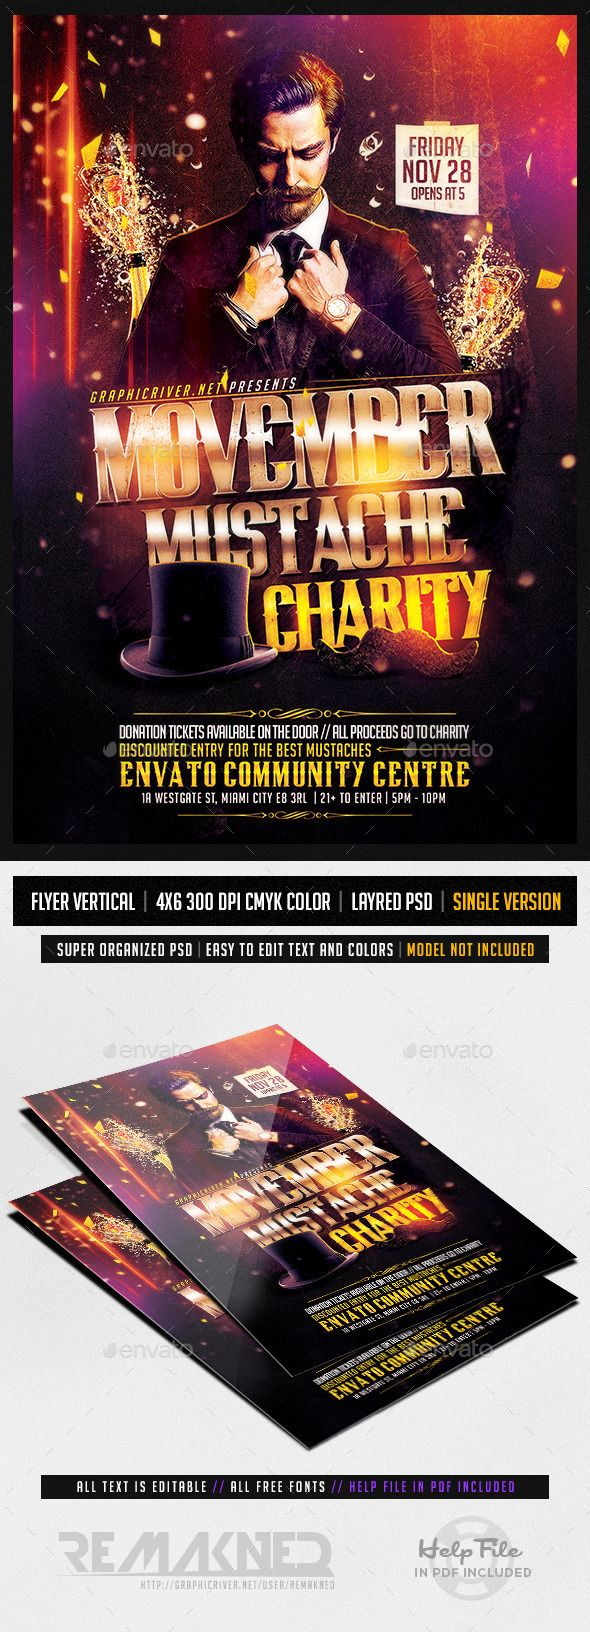 Movember Mustache Charity | Flyer Template PSD